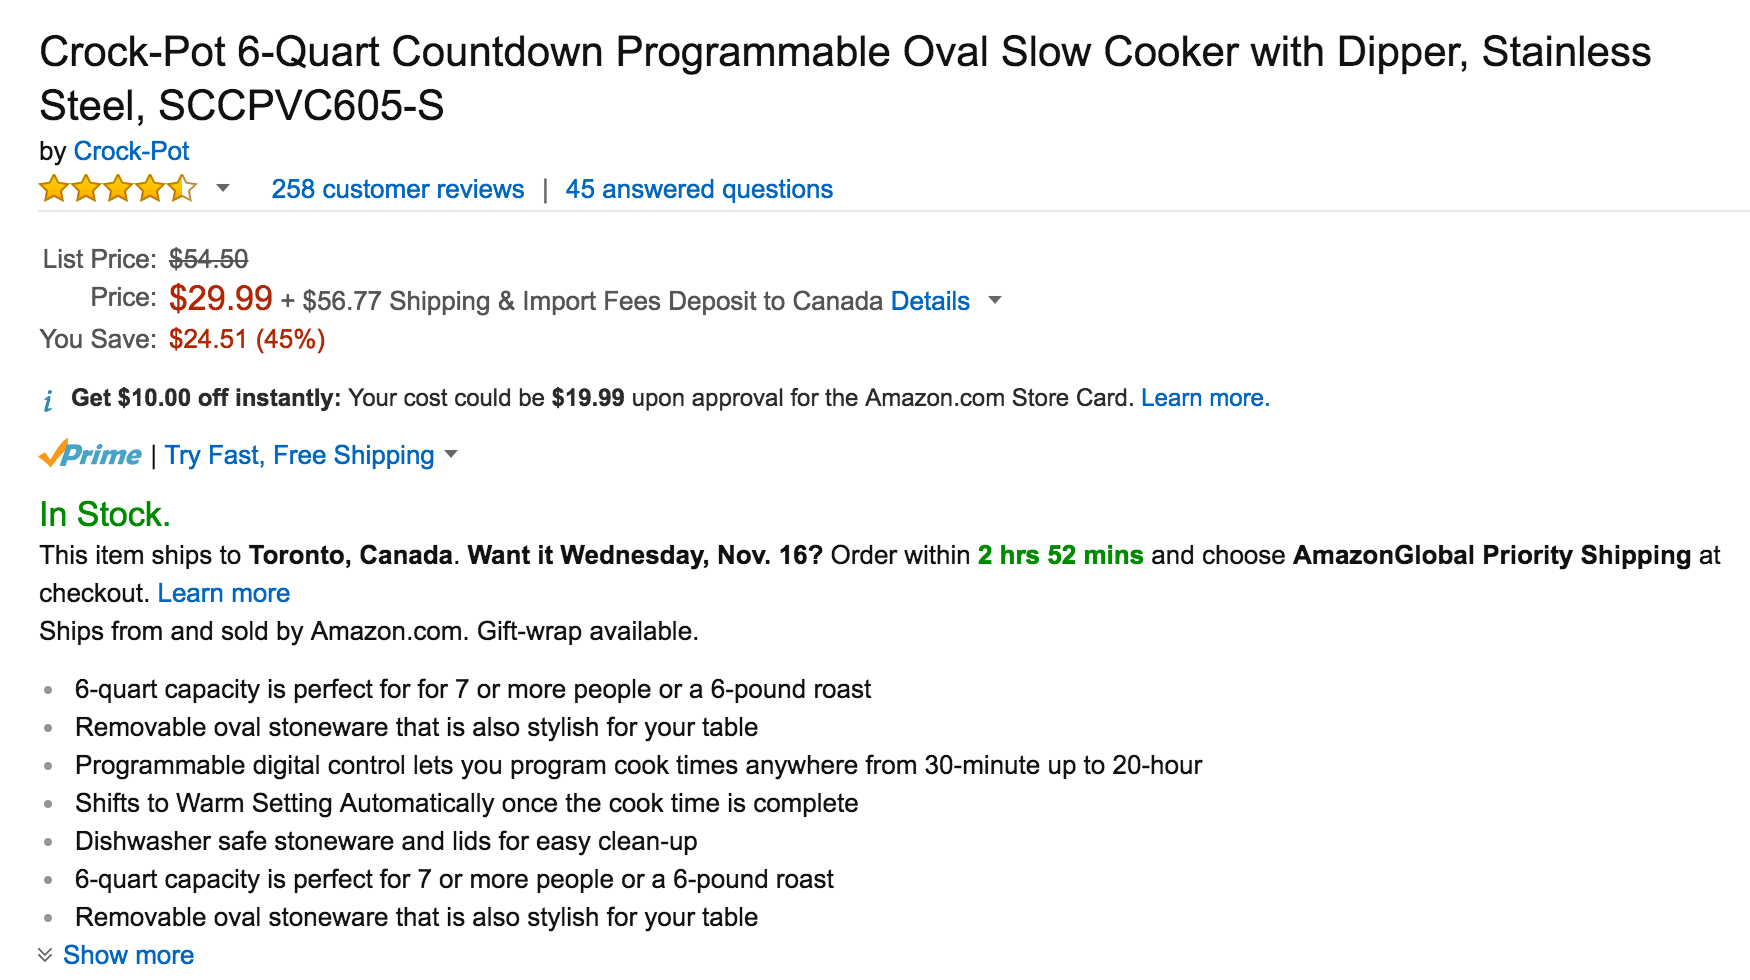 crock-pot-6-quart-countdown-oval-slow-cooker-with-dipper-in-stainless-steel-sccpvc605-s-2